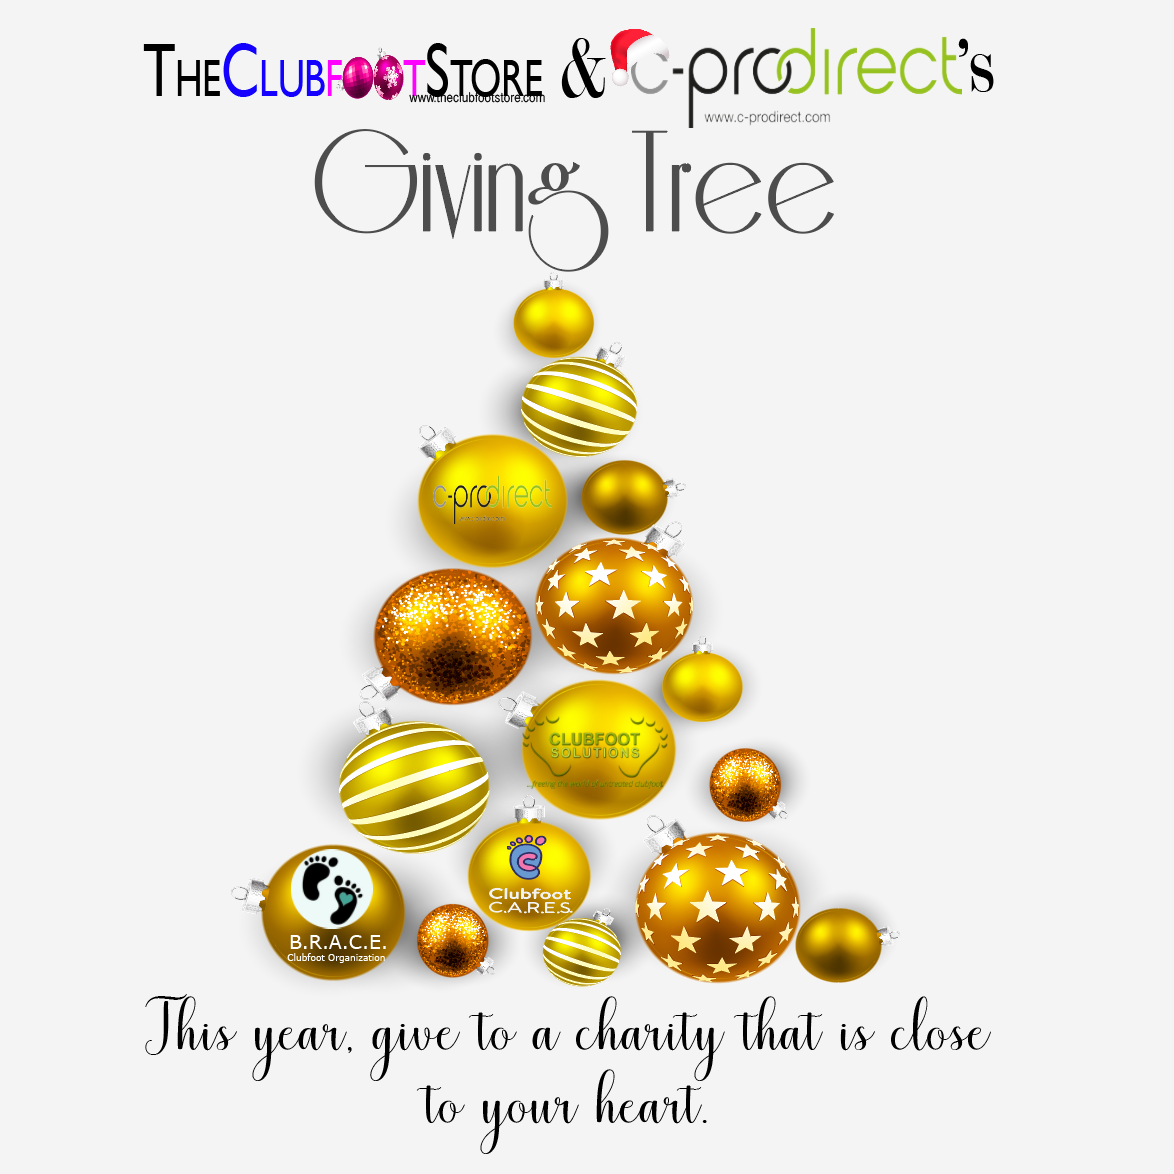 Giving Tree - Christmas 2019